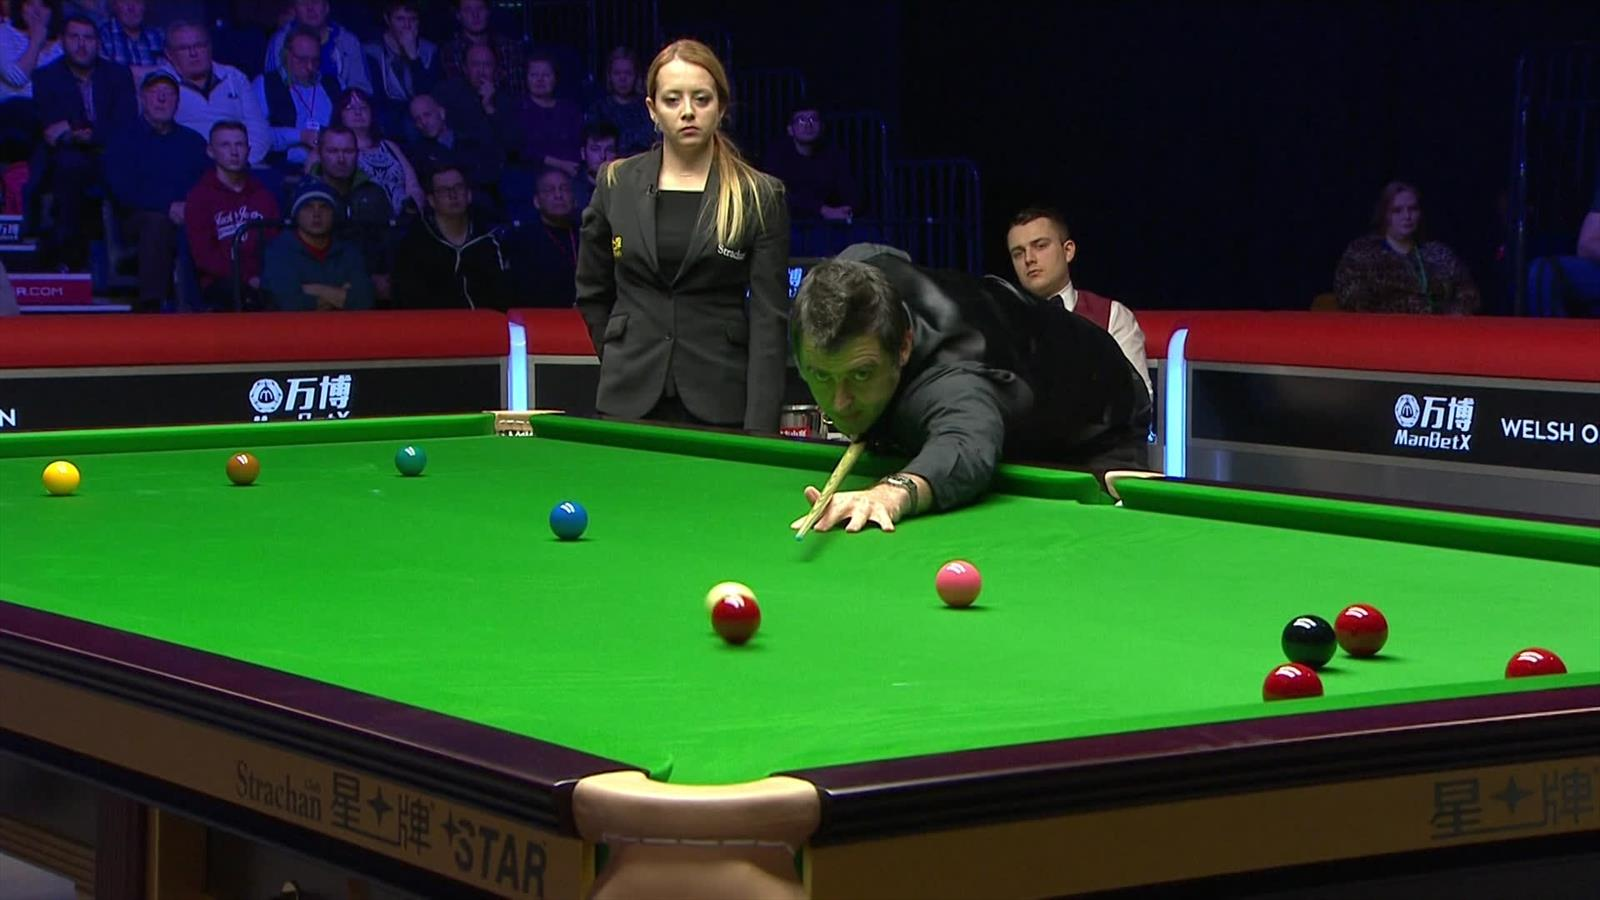 Snooker Wm 2020